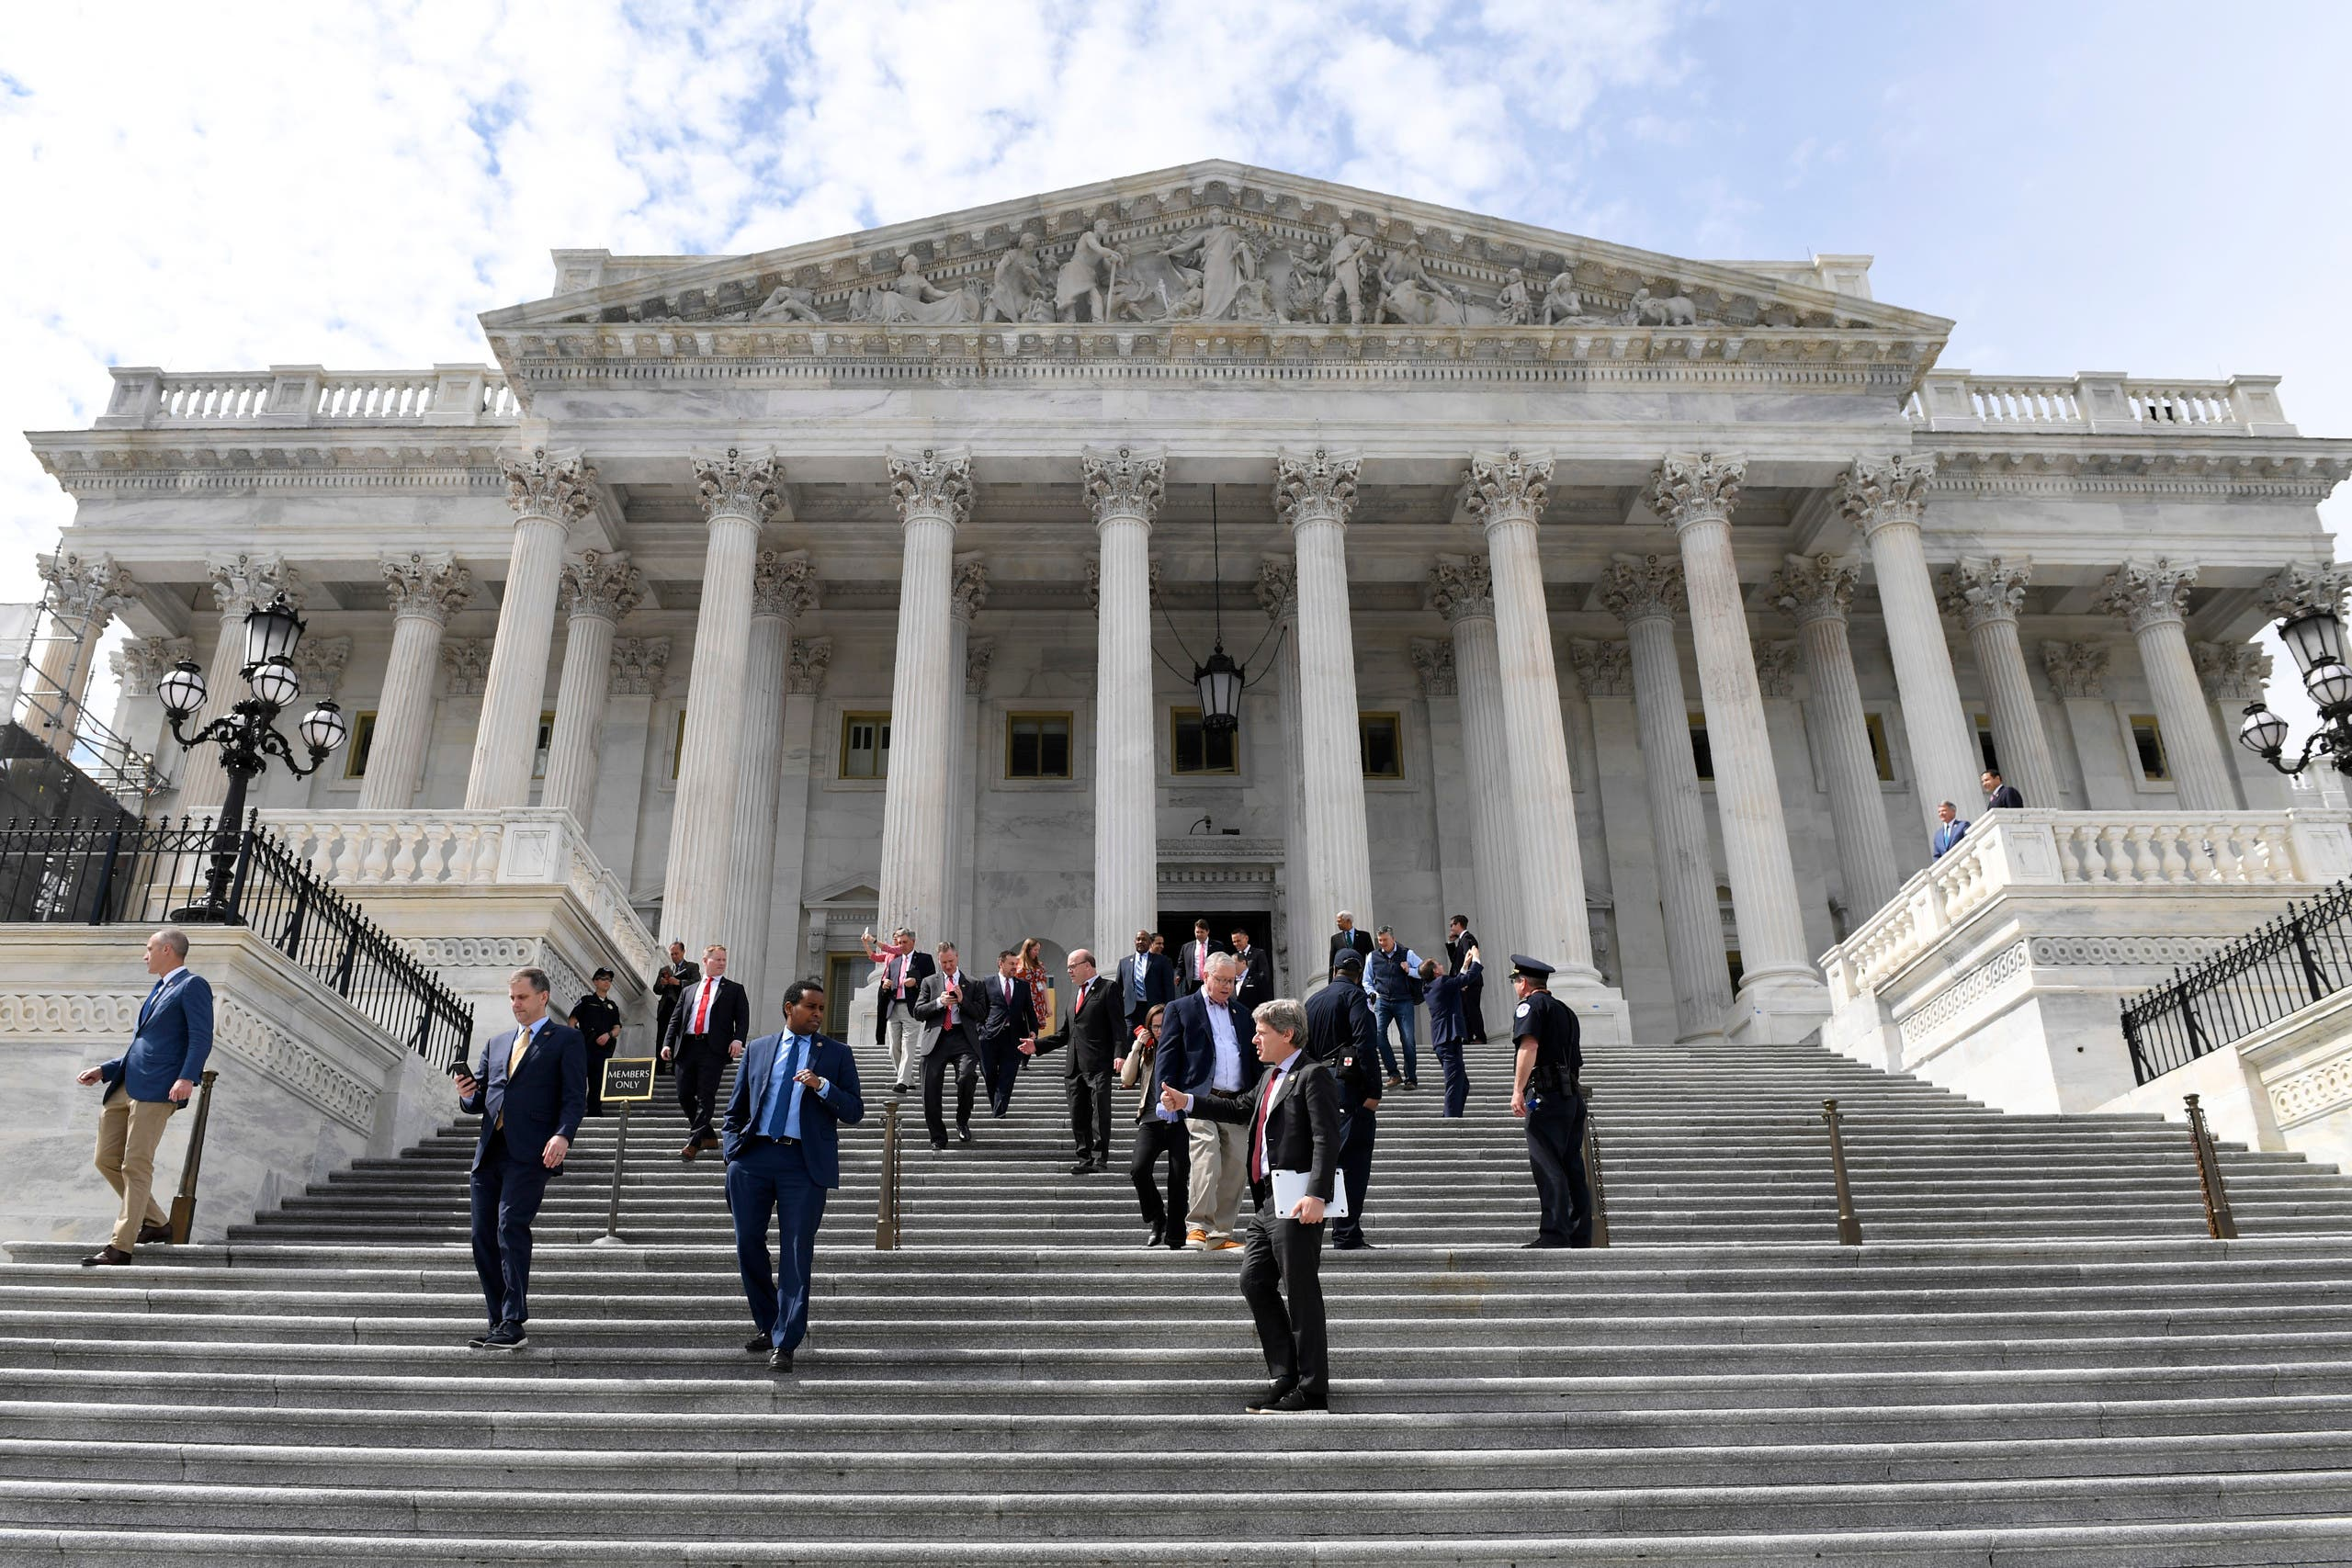 Members of the House of Representatives walk down the steps of Capitol Hill in Washington, on March 27, 2020, after passing a coronavirus rescue package. (AP)